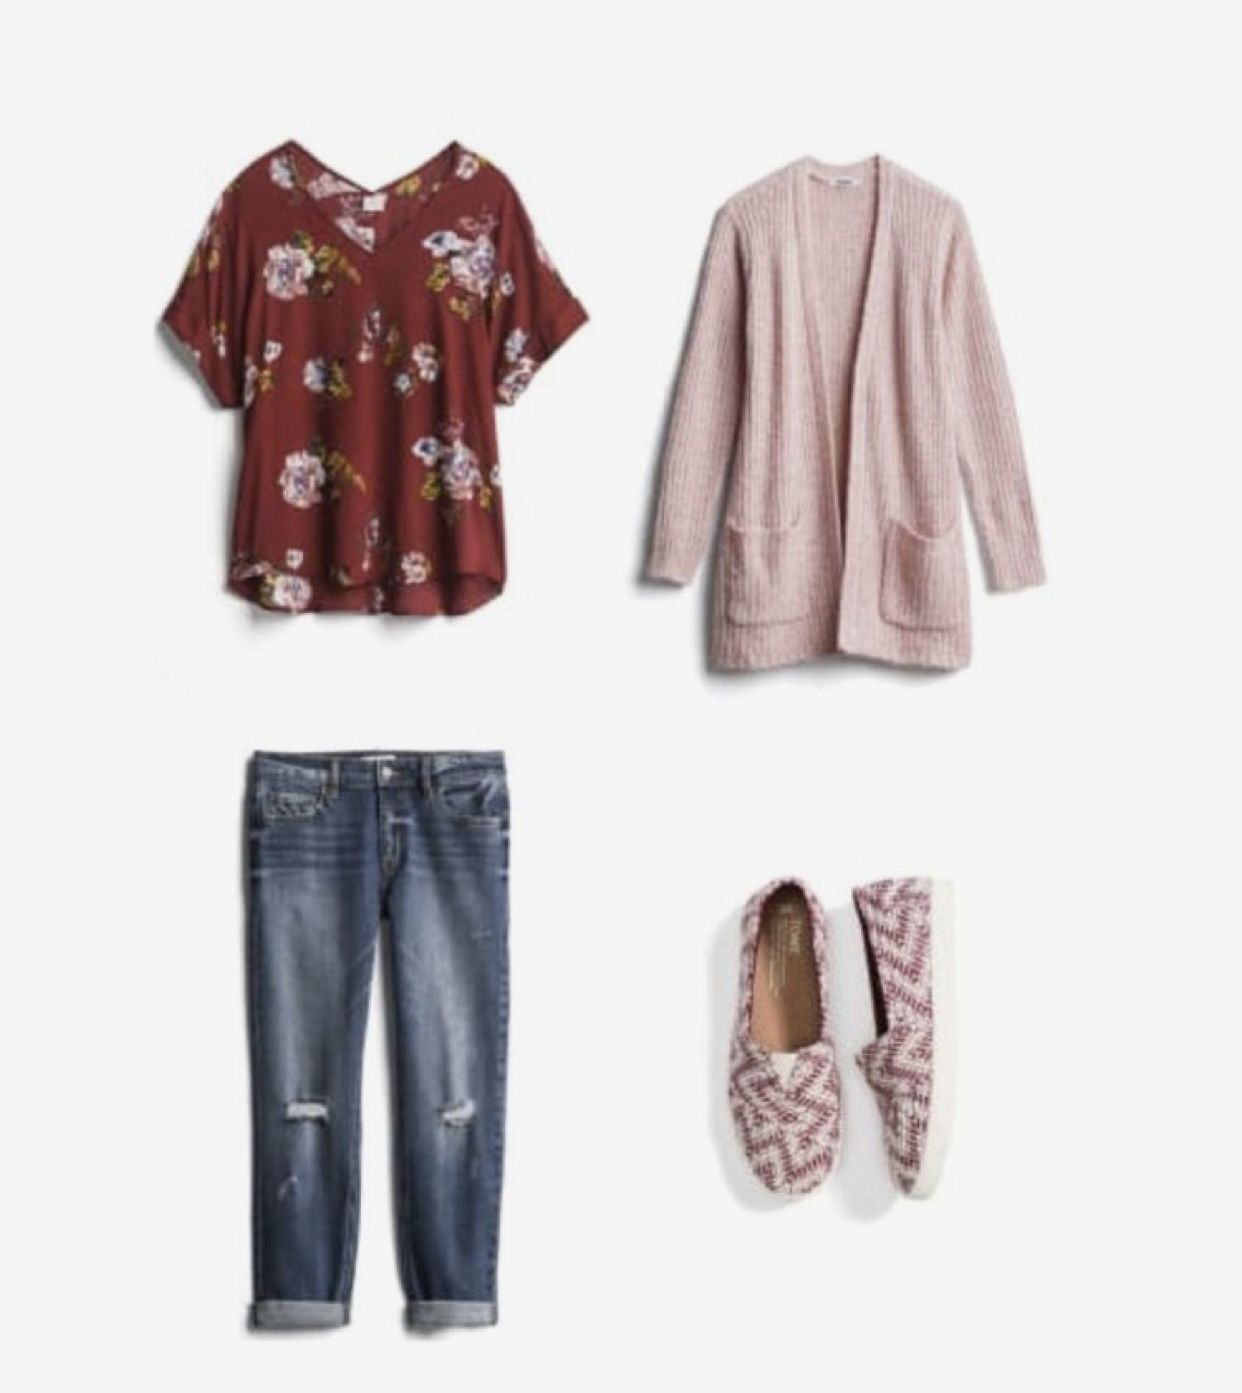 My Stitch Fix Floral Tops Styled for Spring | My Favorite Hello #stitchfix